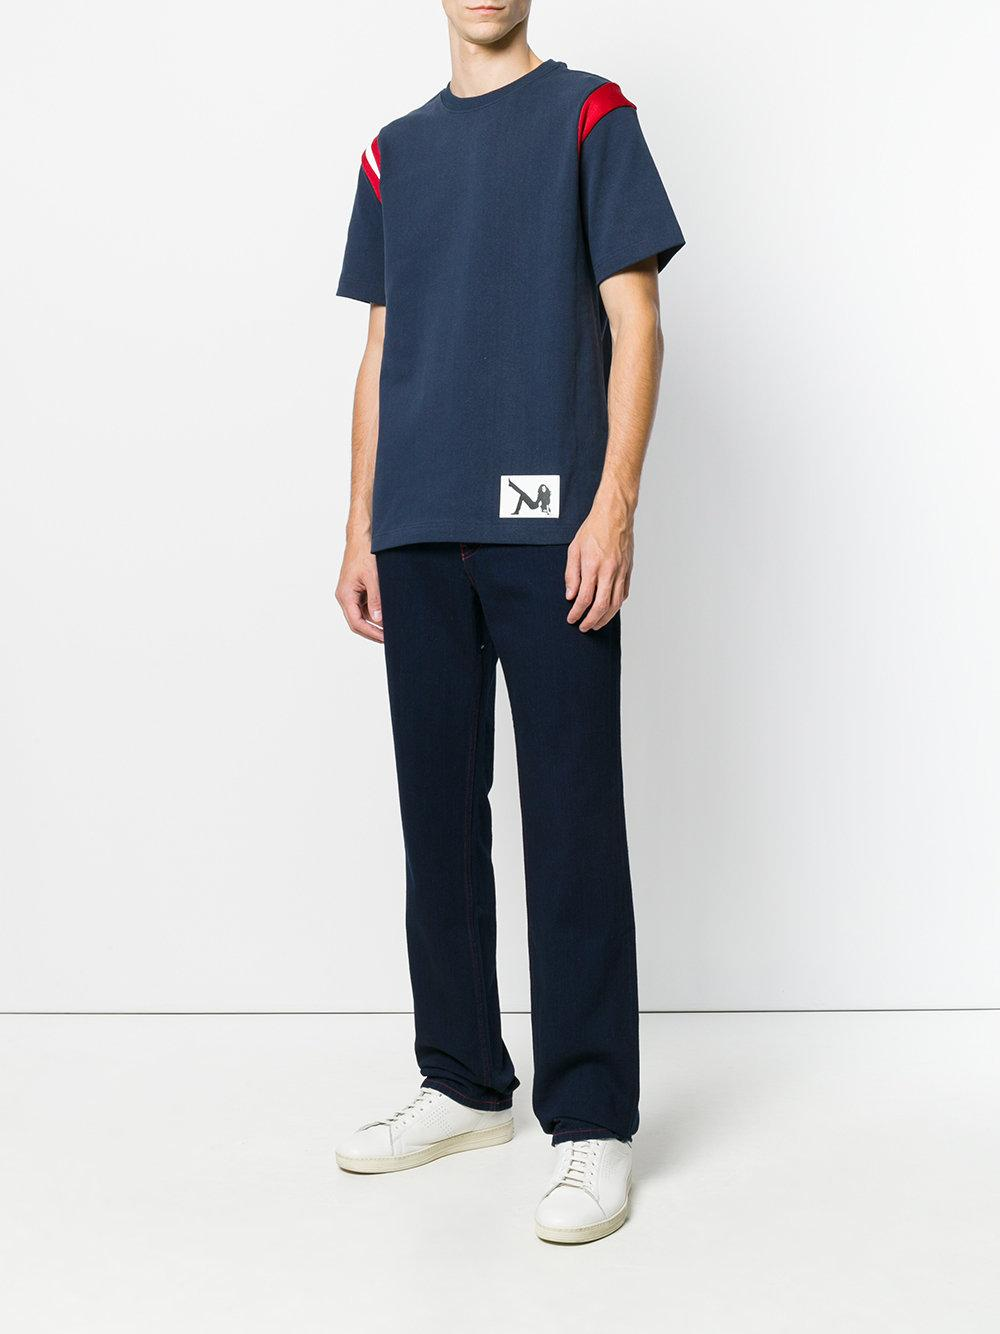 Buy Cheap Price T-shirt with contrast shoulders - Blue Calvin Klein Jeans Outlet Where To Buy WTJPOzT